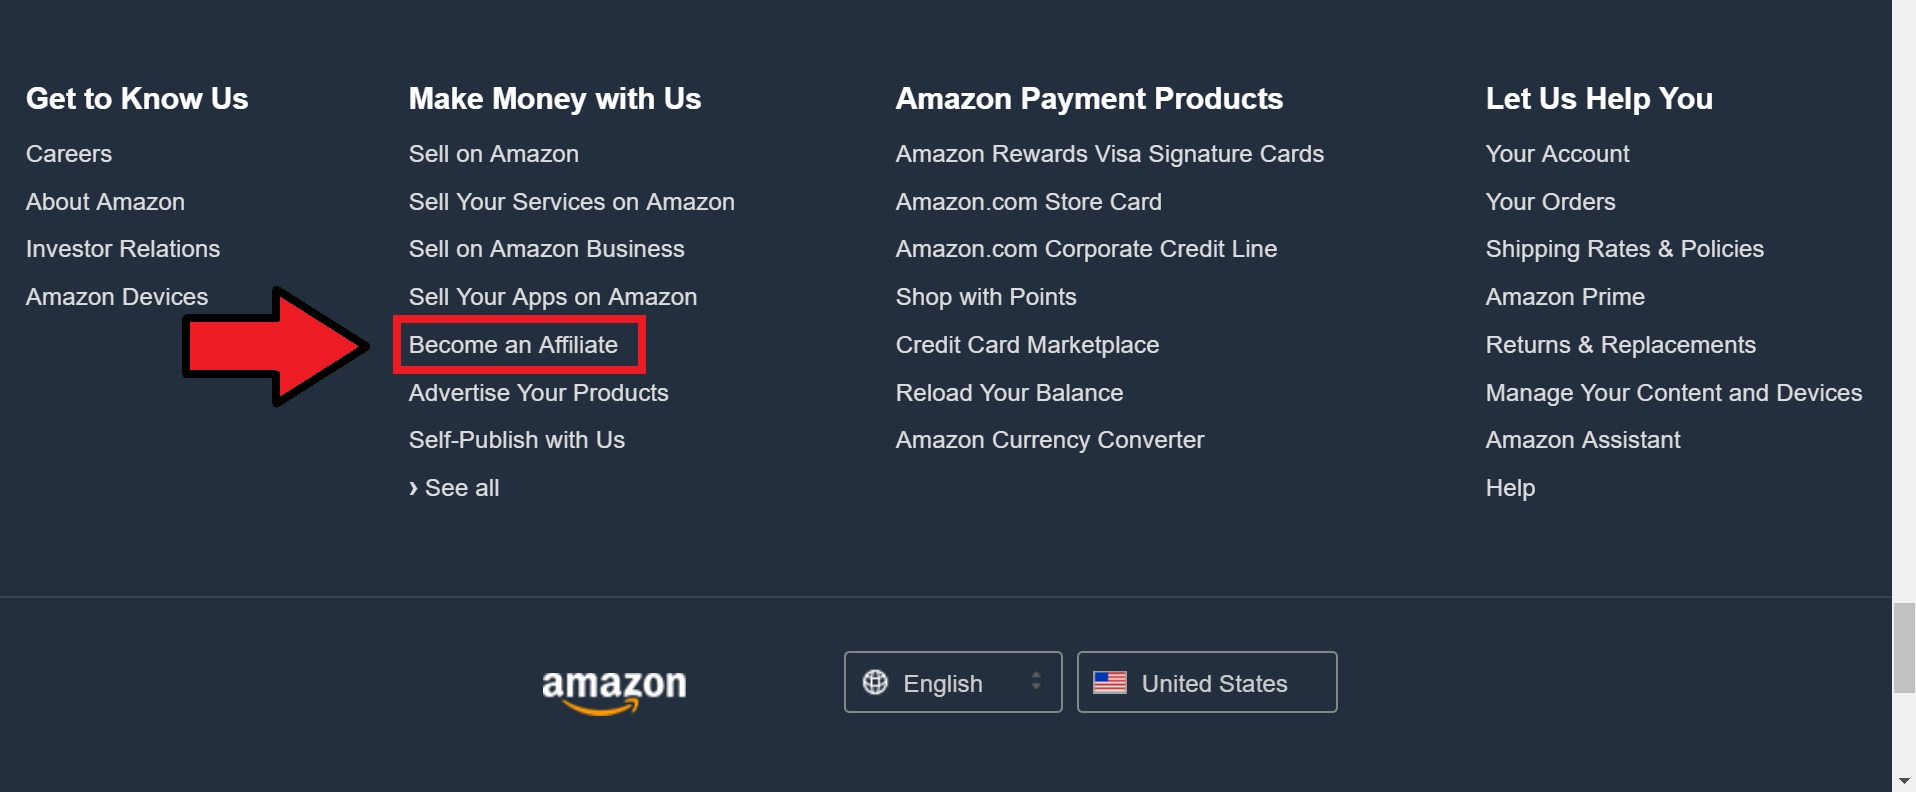 amazon website screenshot with red arrow pointing to how to start affiliate marketing for beginners